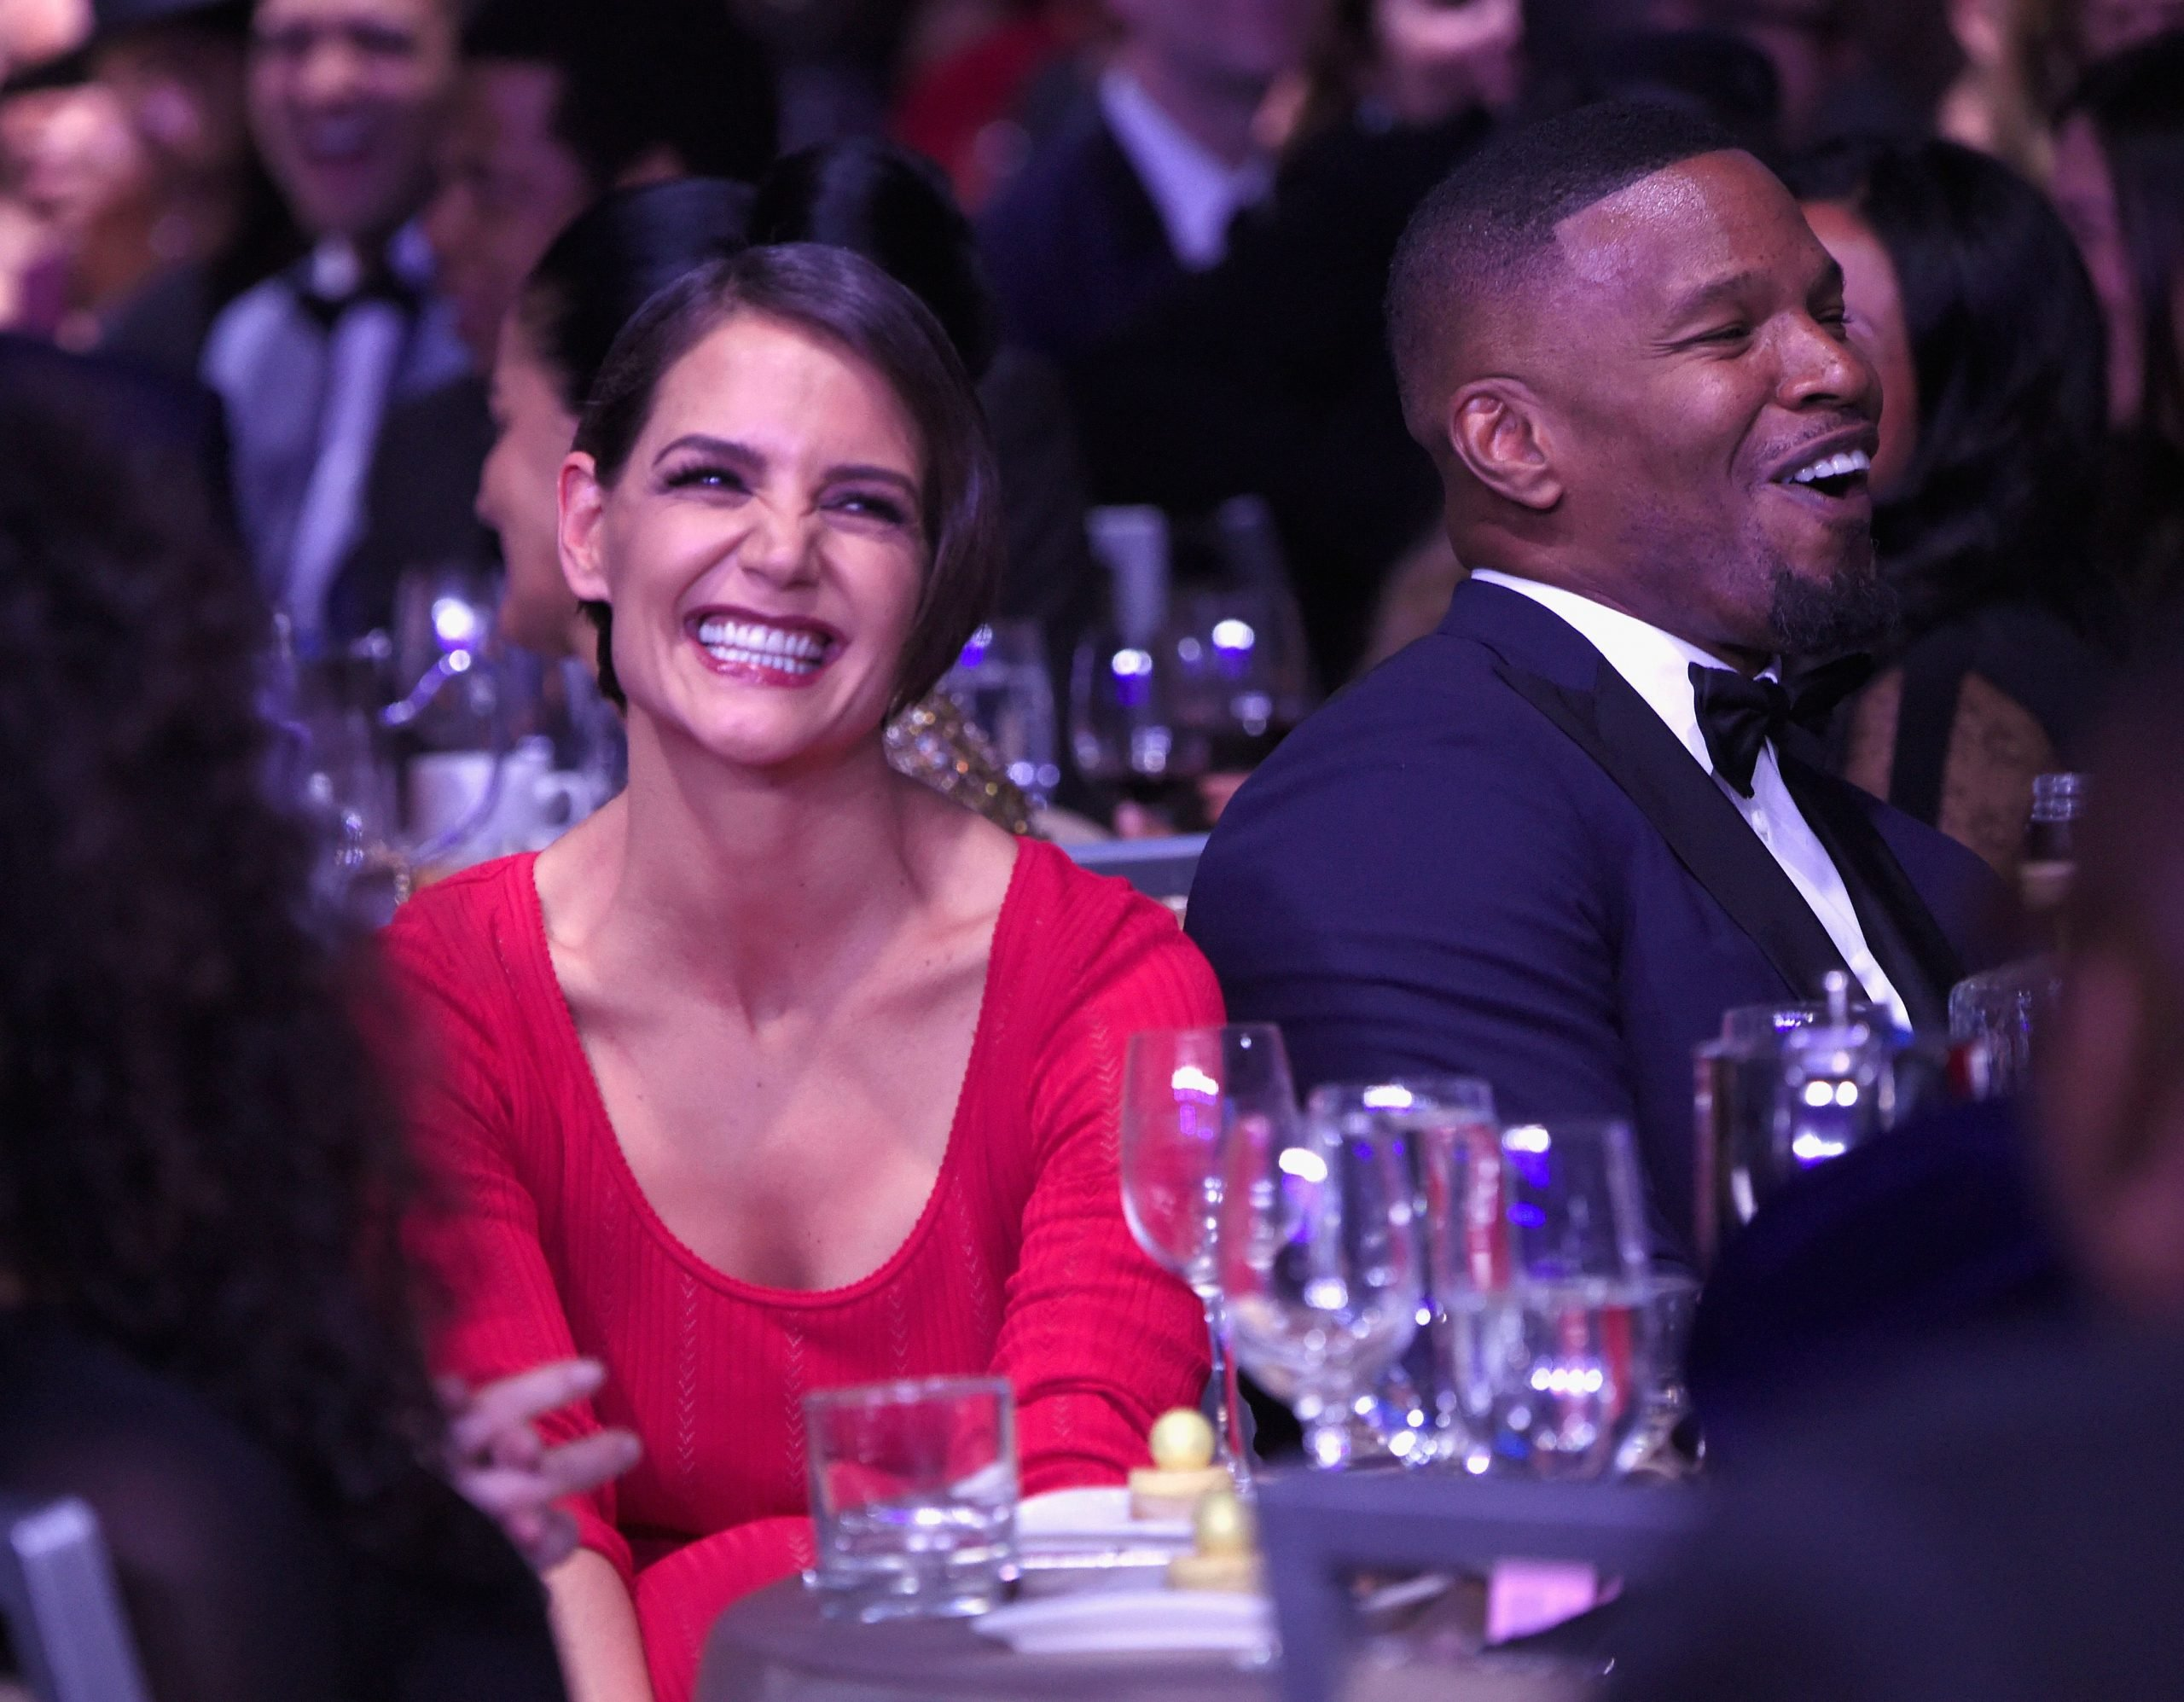 Katie Holmes Confirms, She DUMPED Jamie Foxx Because of Tom Cruise coming back into her life